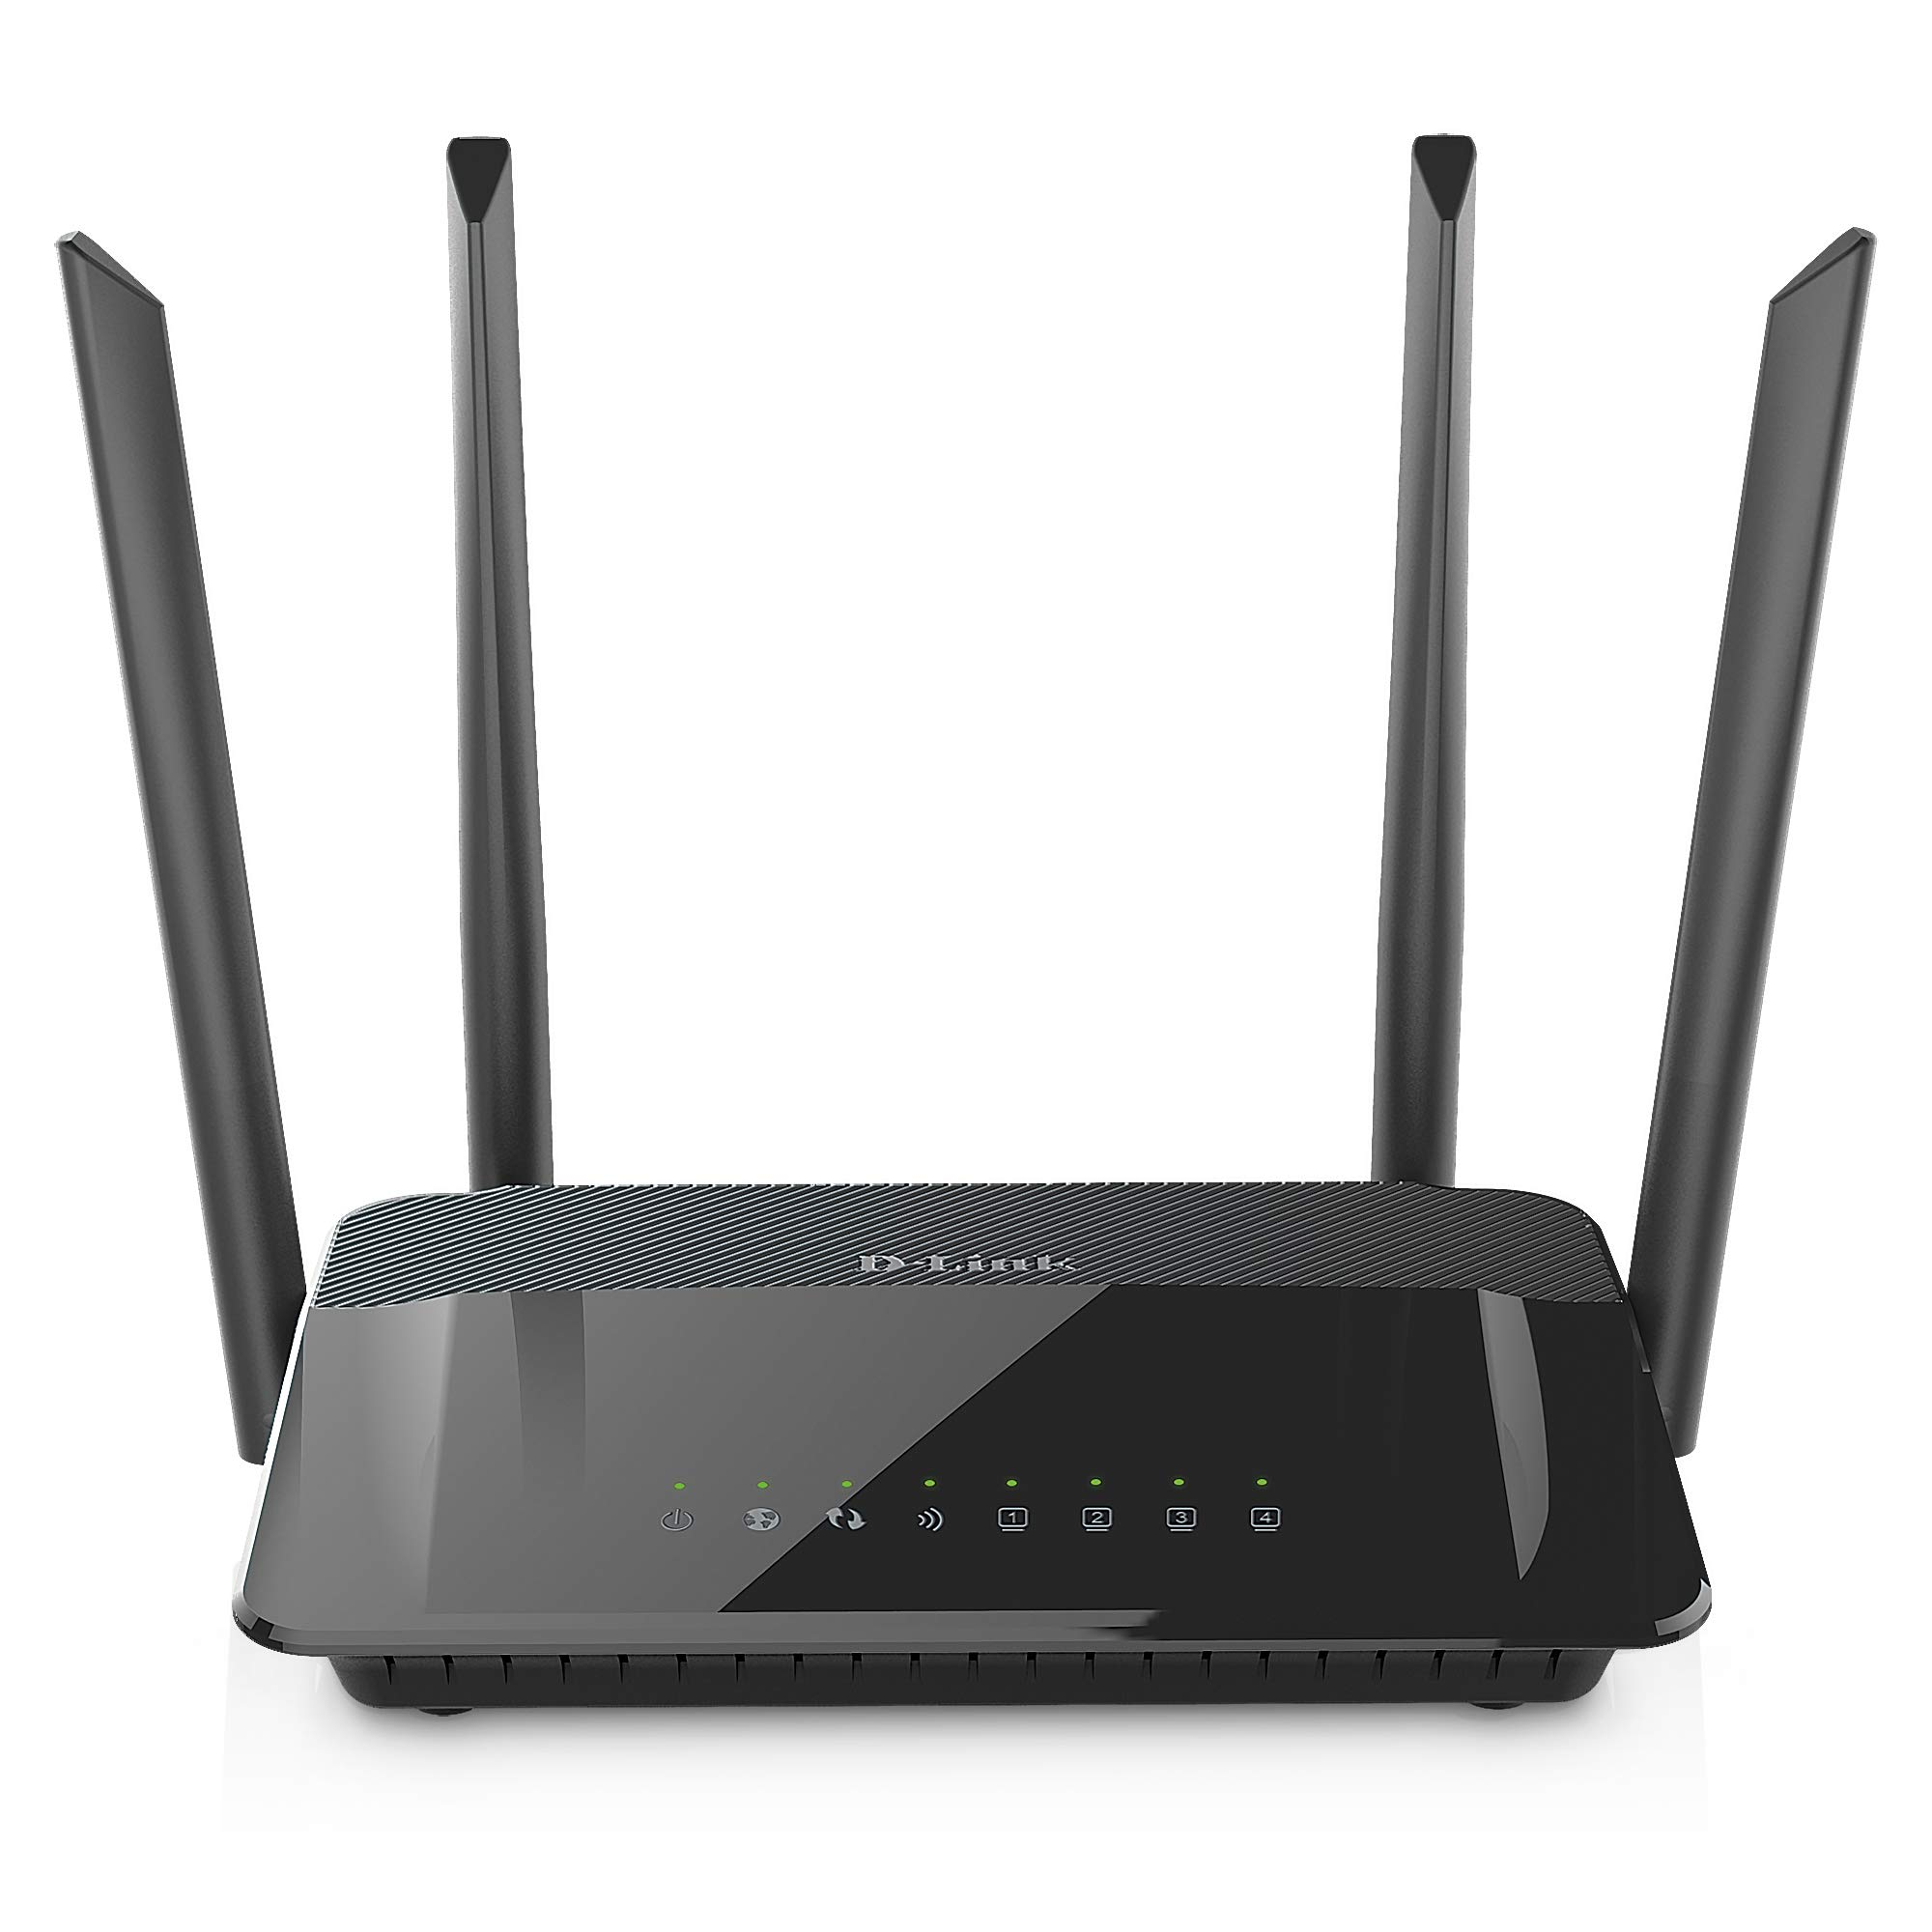 D-Link AC1200 Wifi Router - Smart Dual Band - Gigabit - MU-Mimo - High Power Antennas for Wide Coverage - Easy Setup - Parental CONTROLS (DIR-842) by D-Link